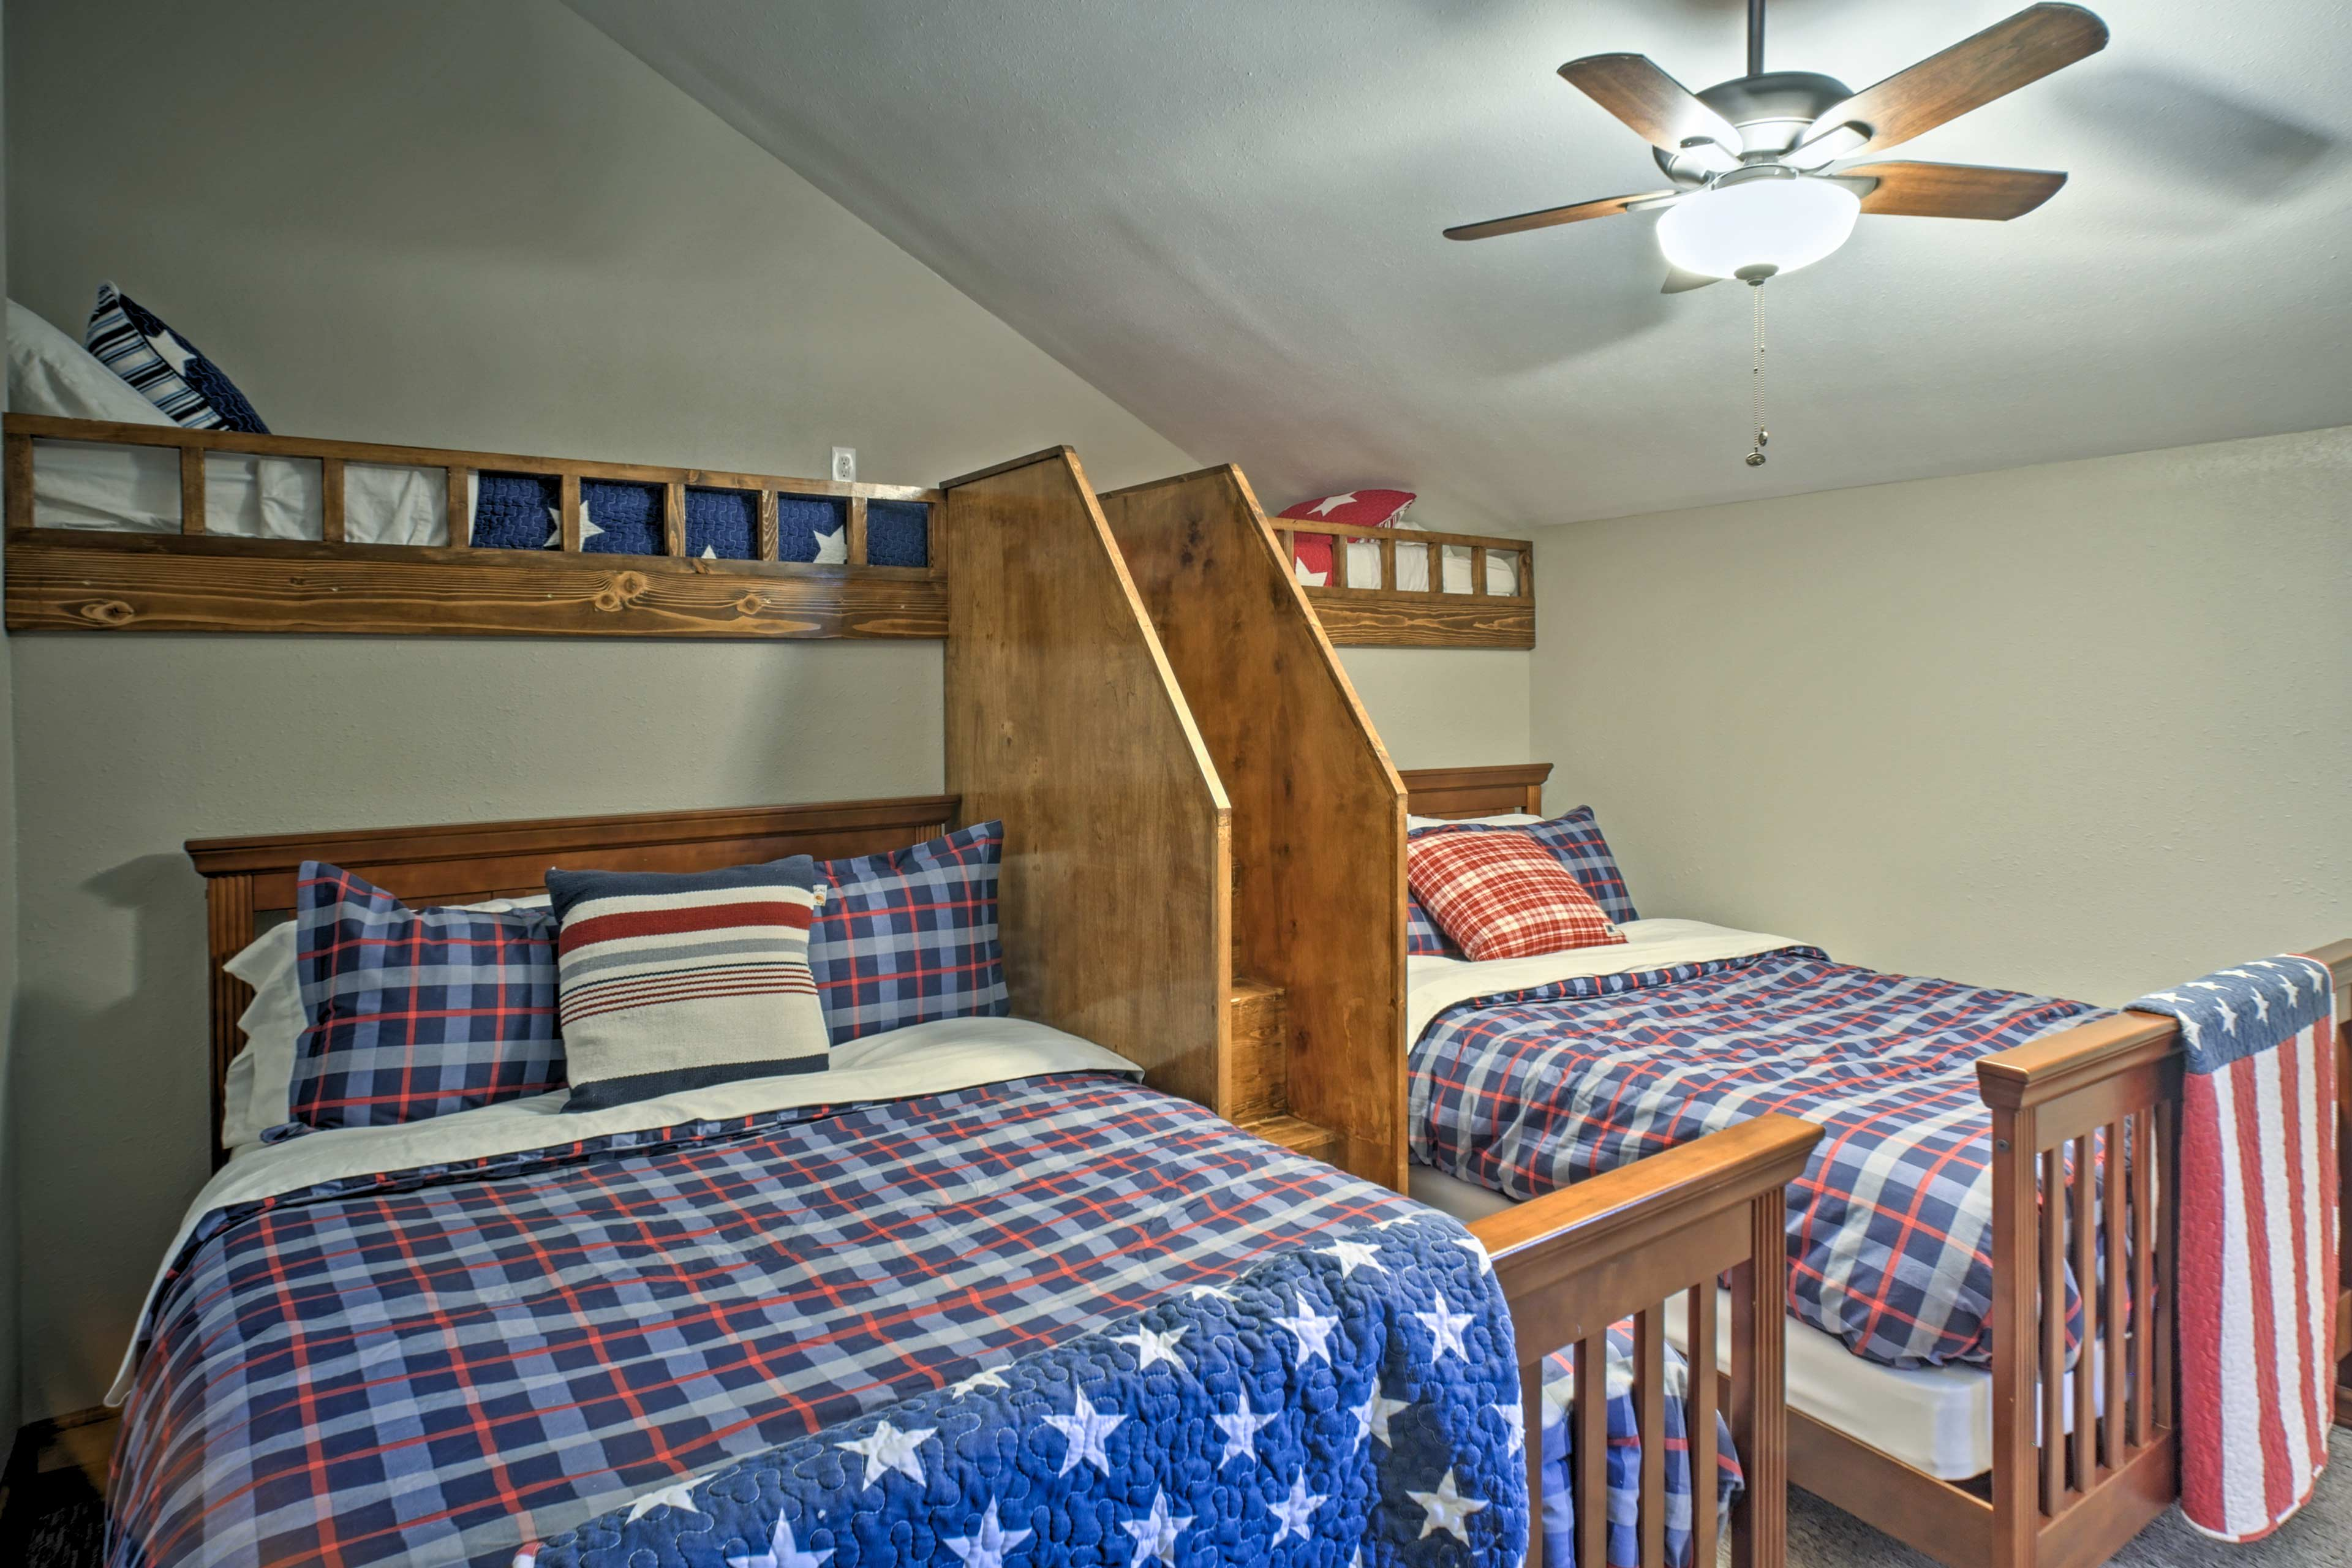 The kiddos will love to sleep on the full and twin beds in the third room!